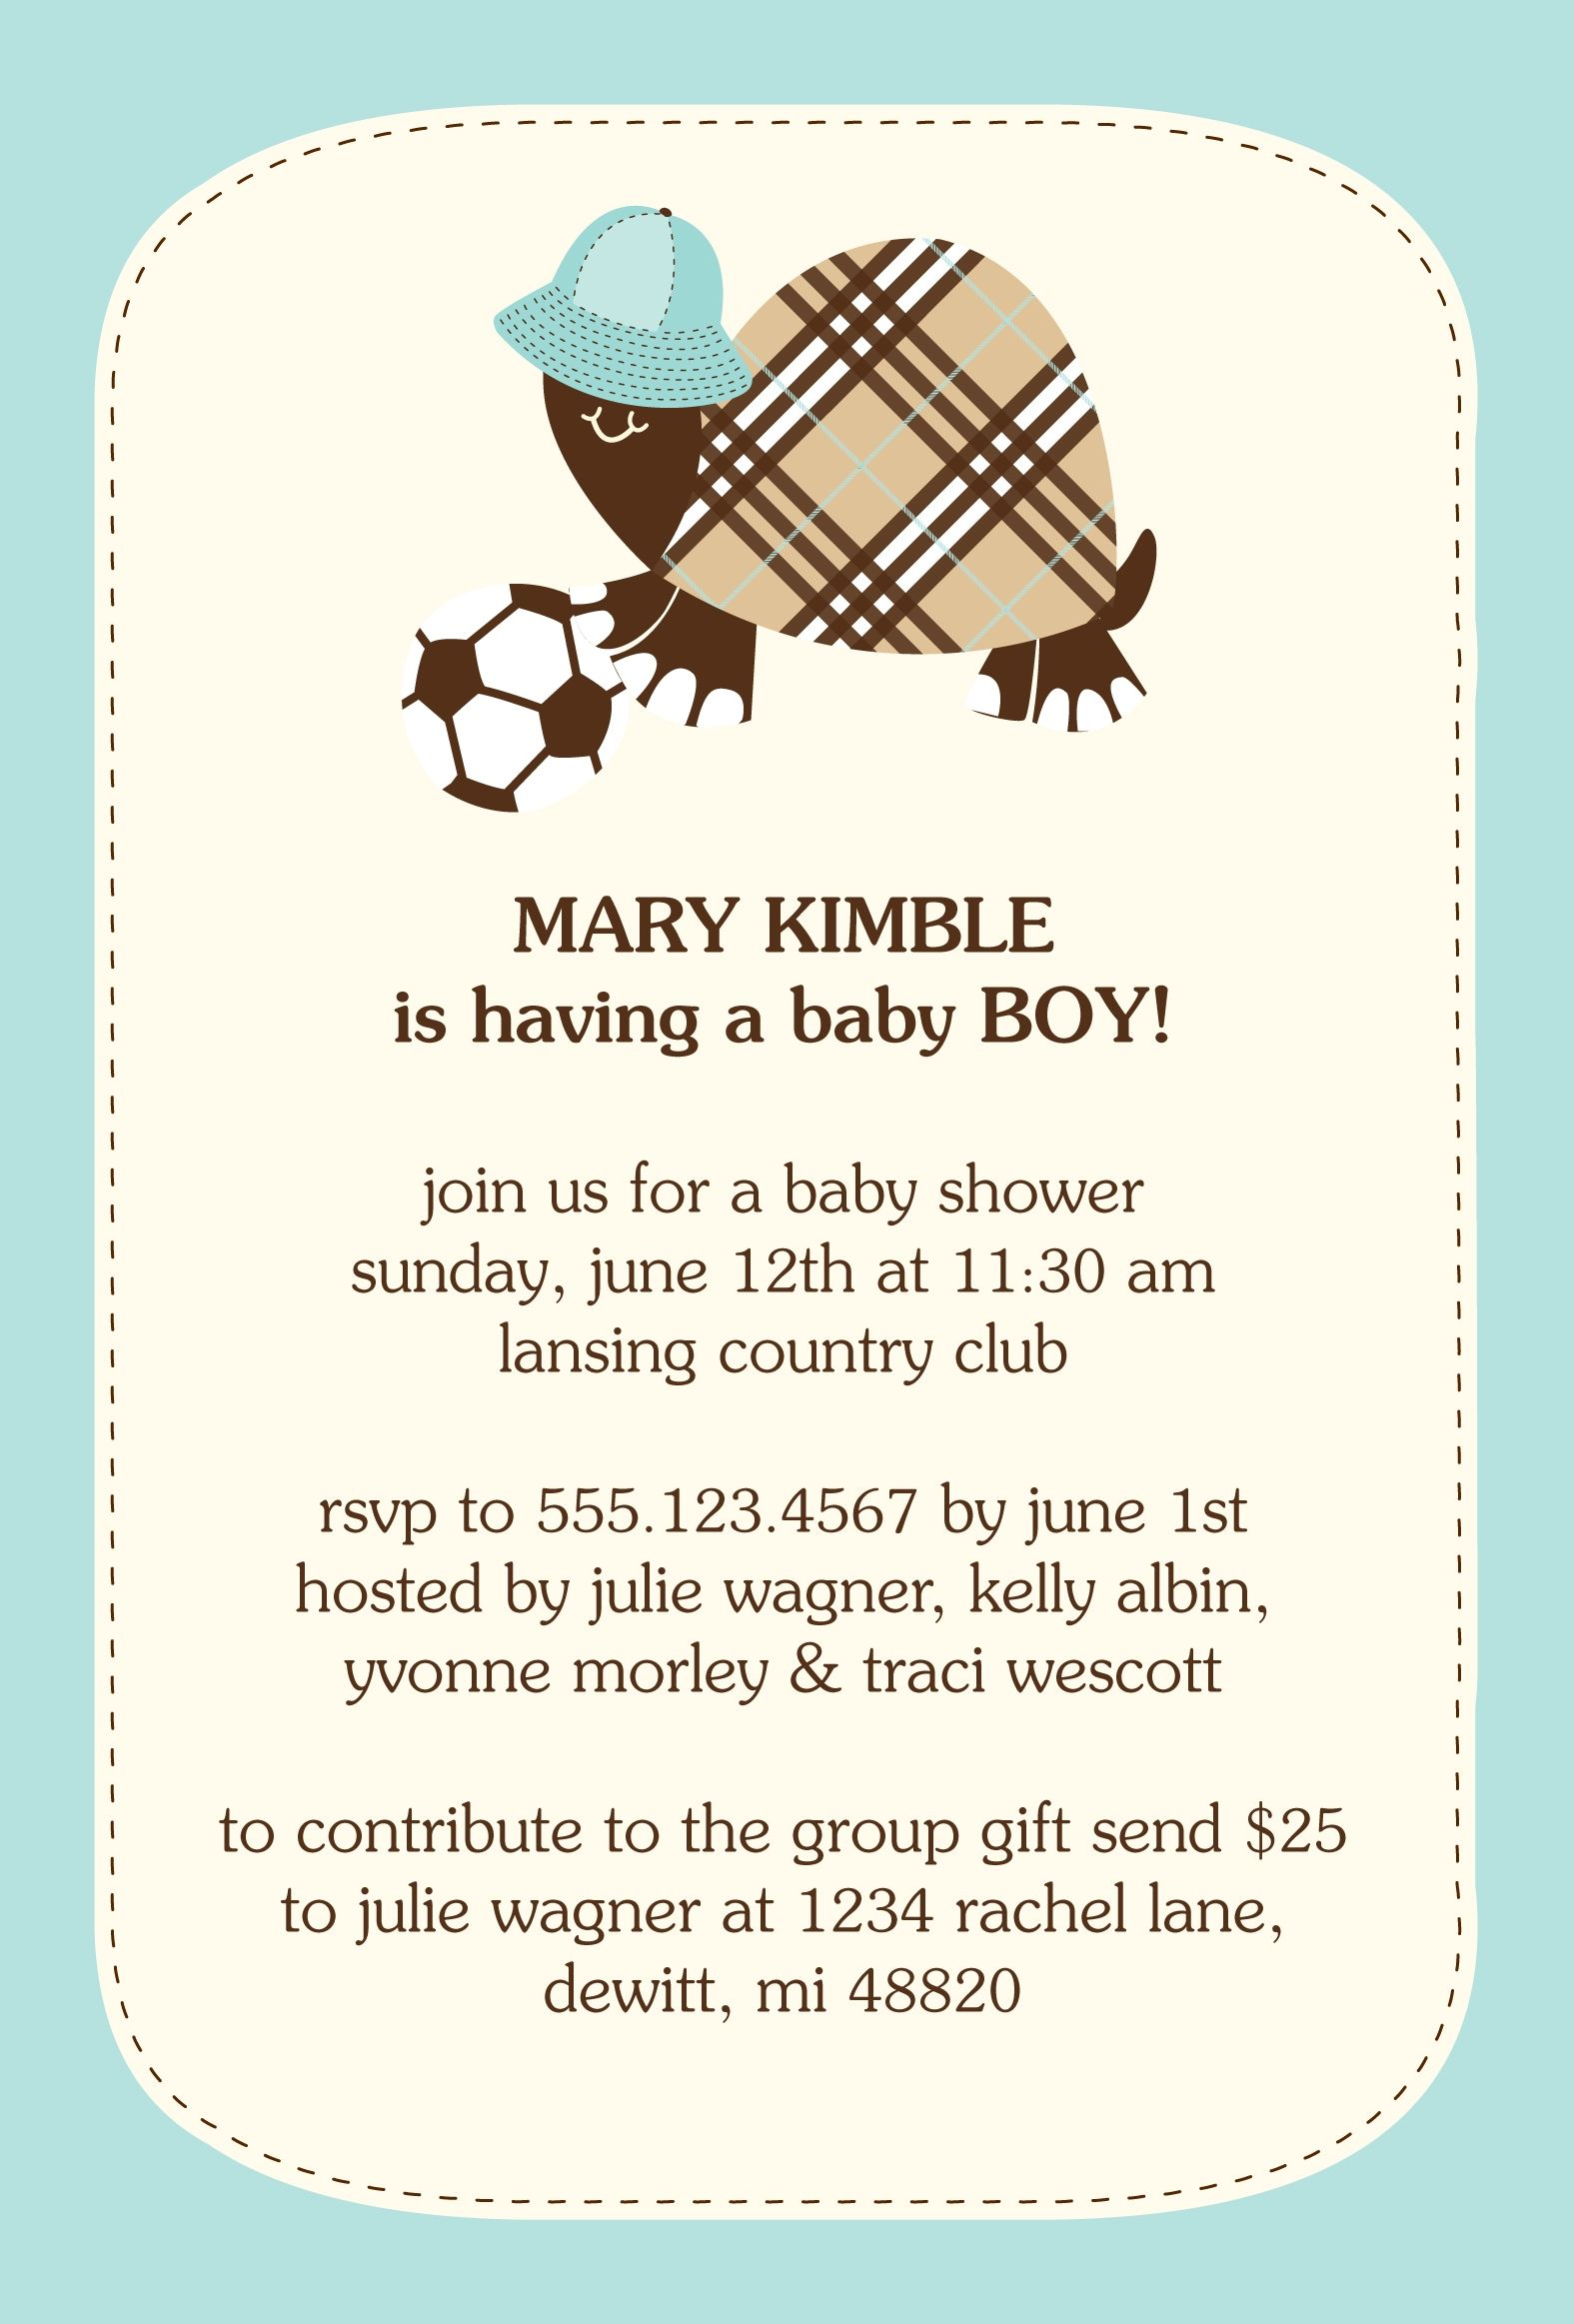 Baby shower invitation message to friends httpatwebryfo baby shower invitation message to friends filmwisefo Image collections